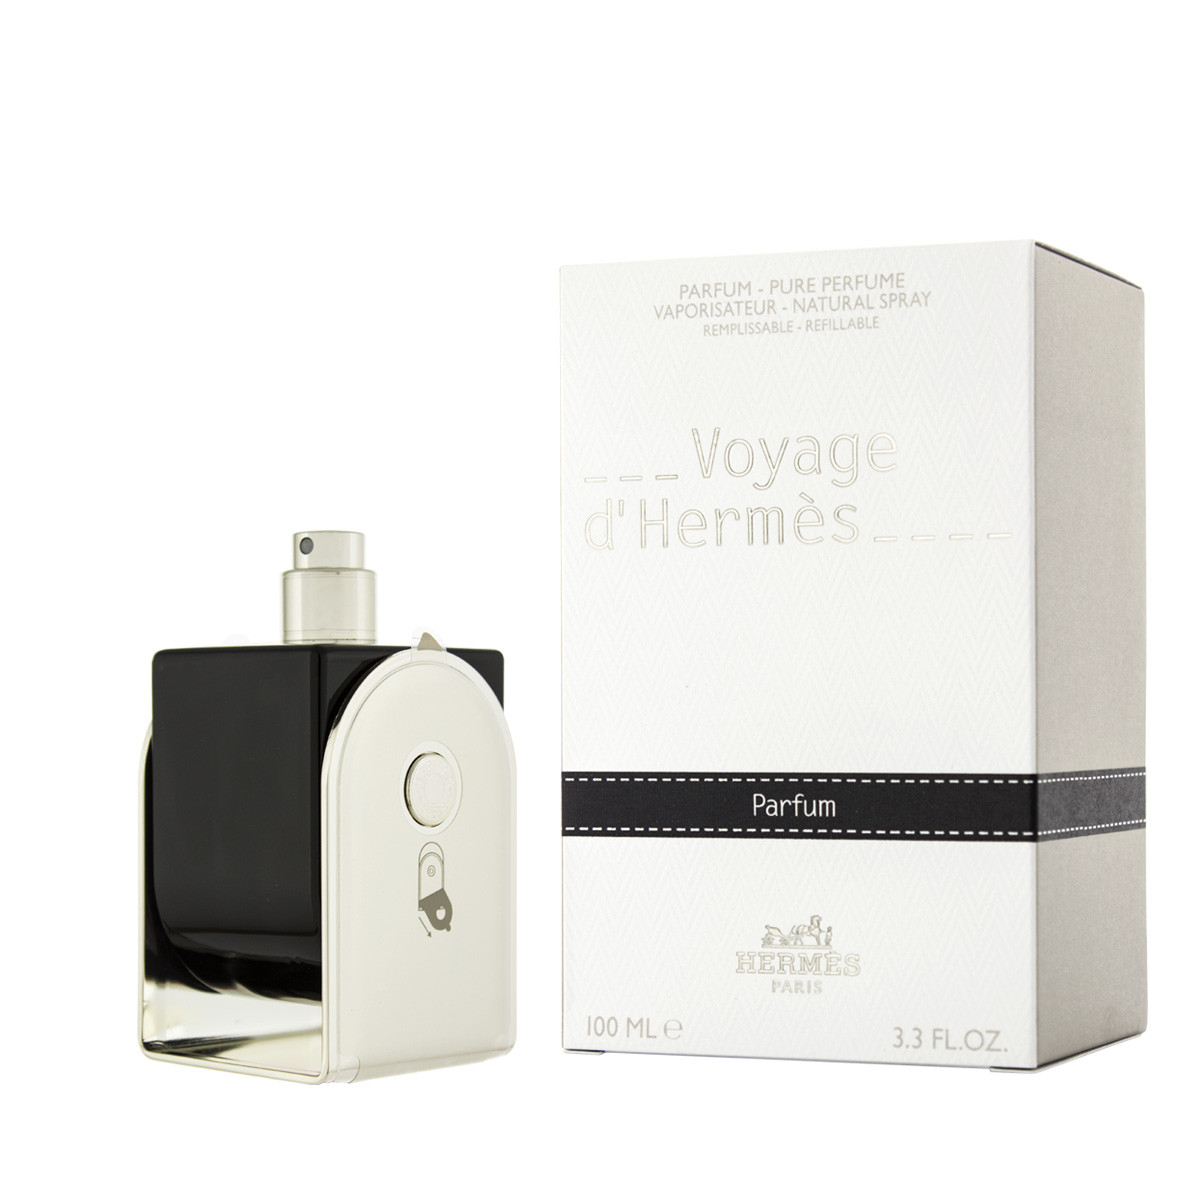 herm s voyage d 39 herm s parfum refillable 100 ml unisex. Black Bedroom Furniture Sets. Home Design Ideas